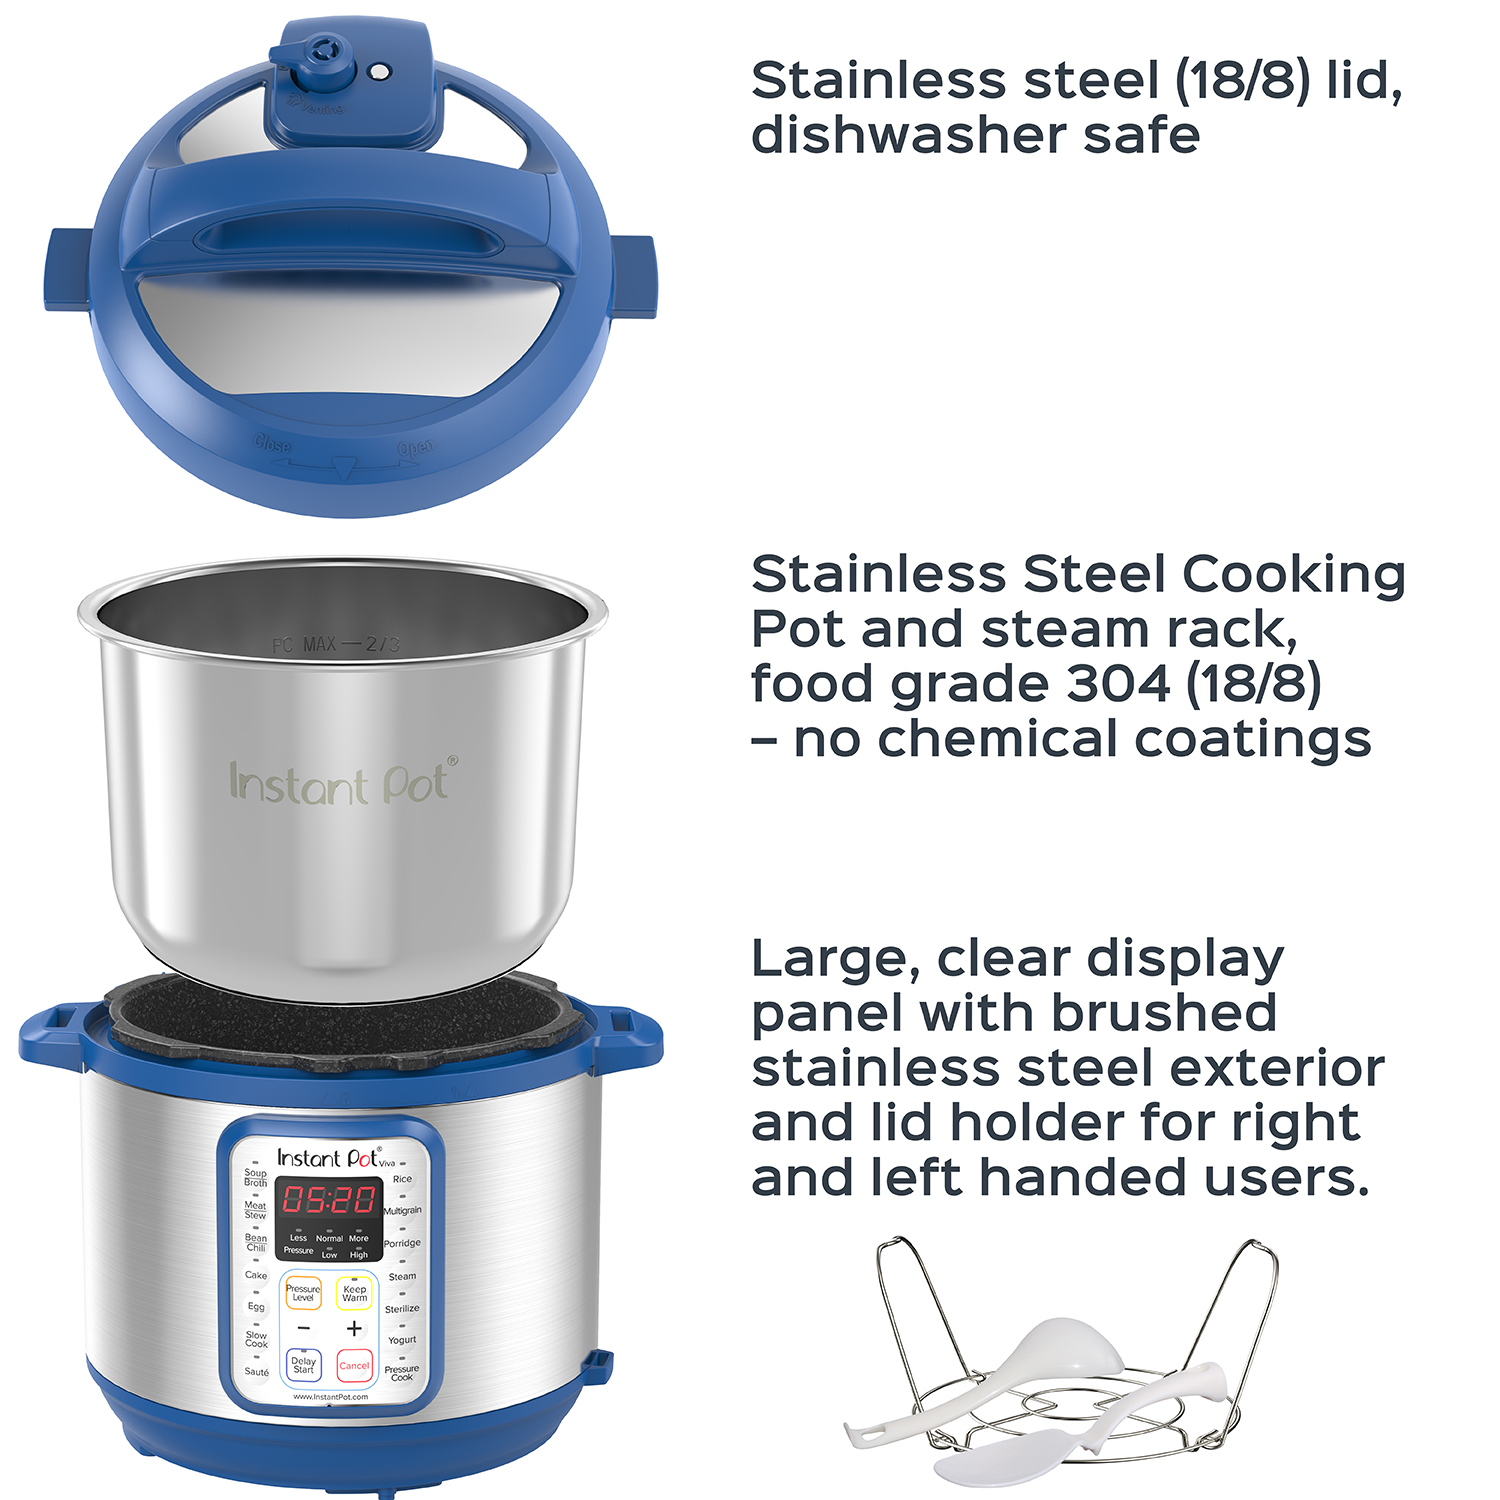 new wave 6 in 1 multi cooker instruction manual